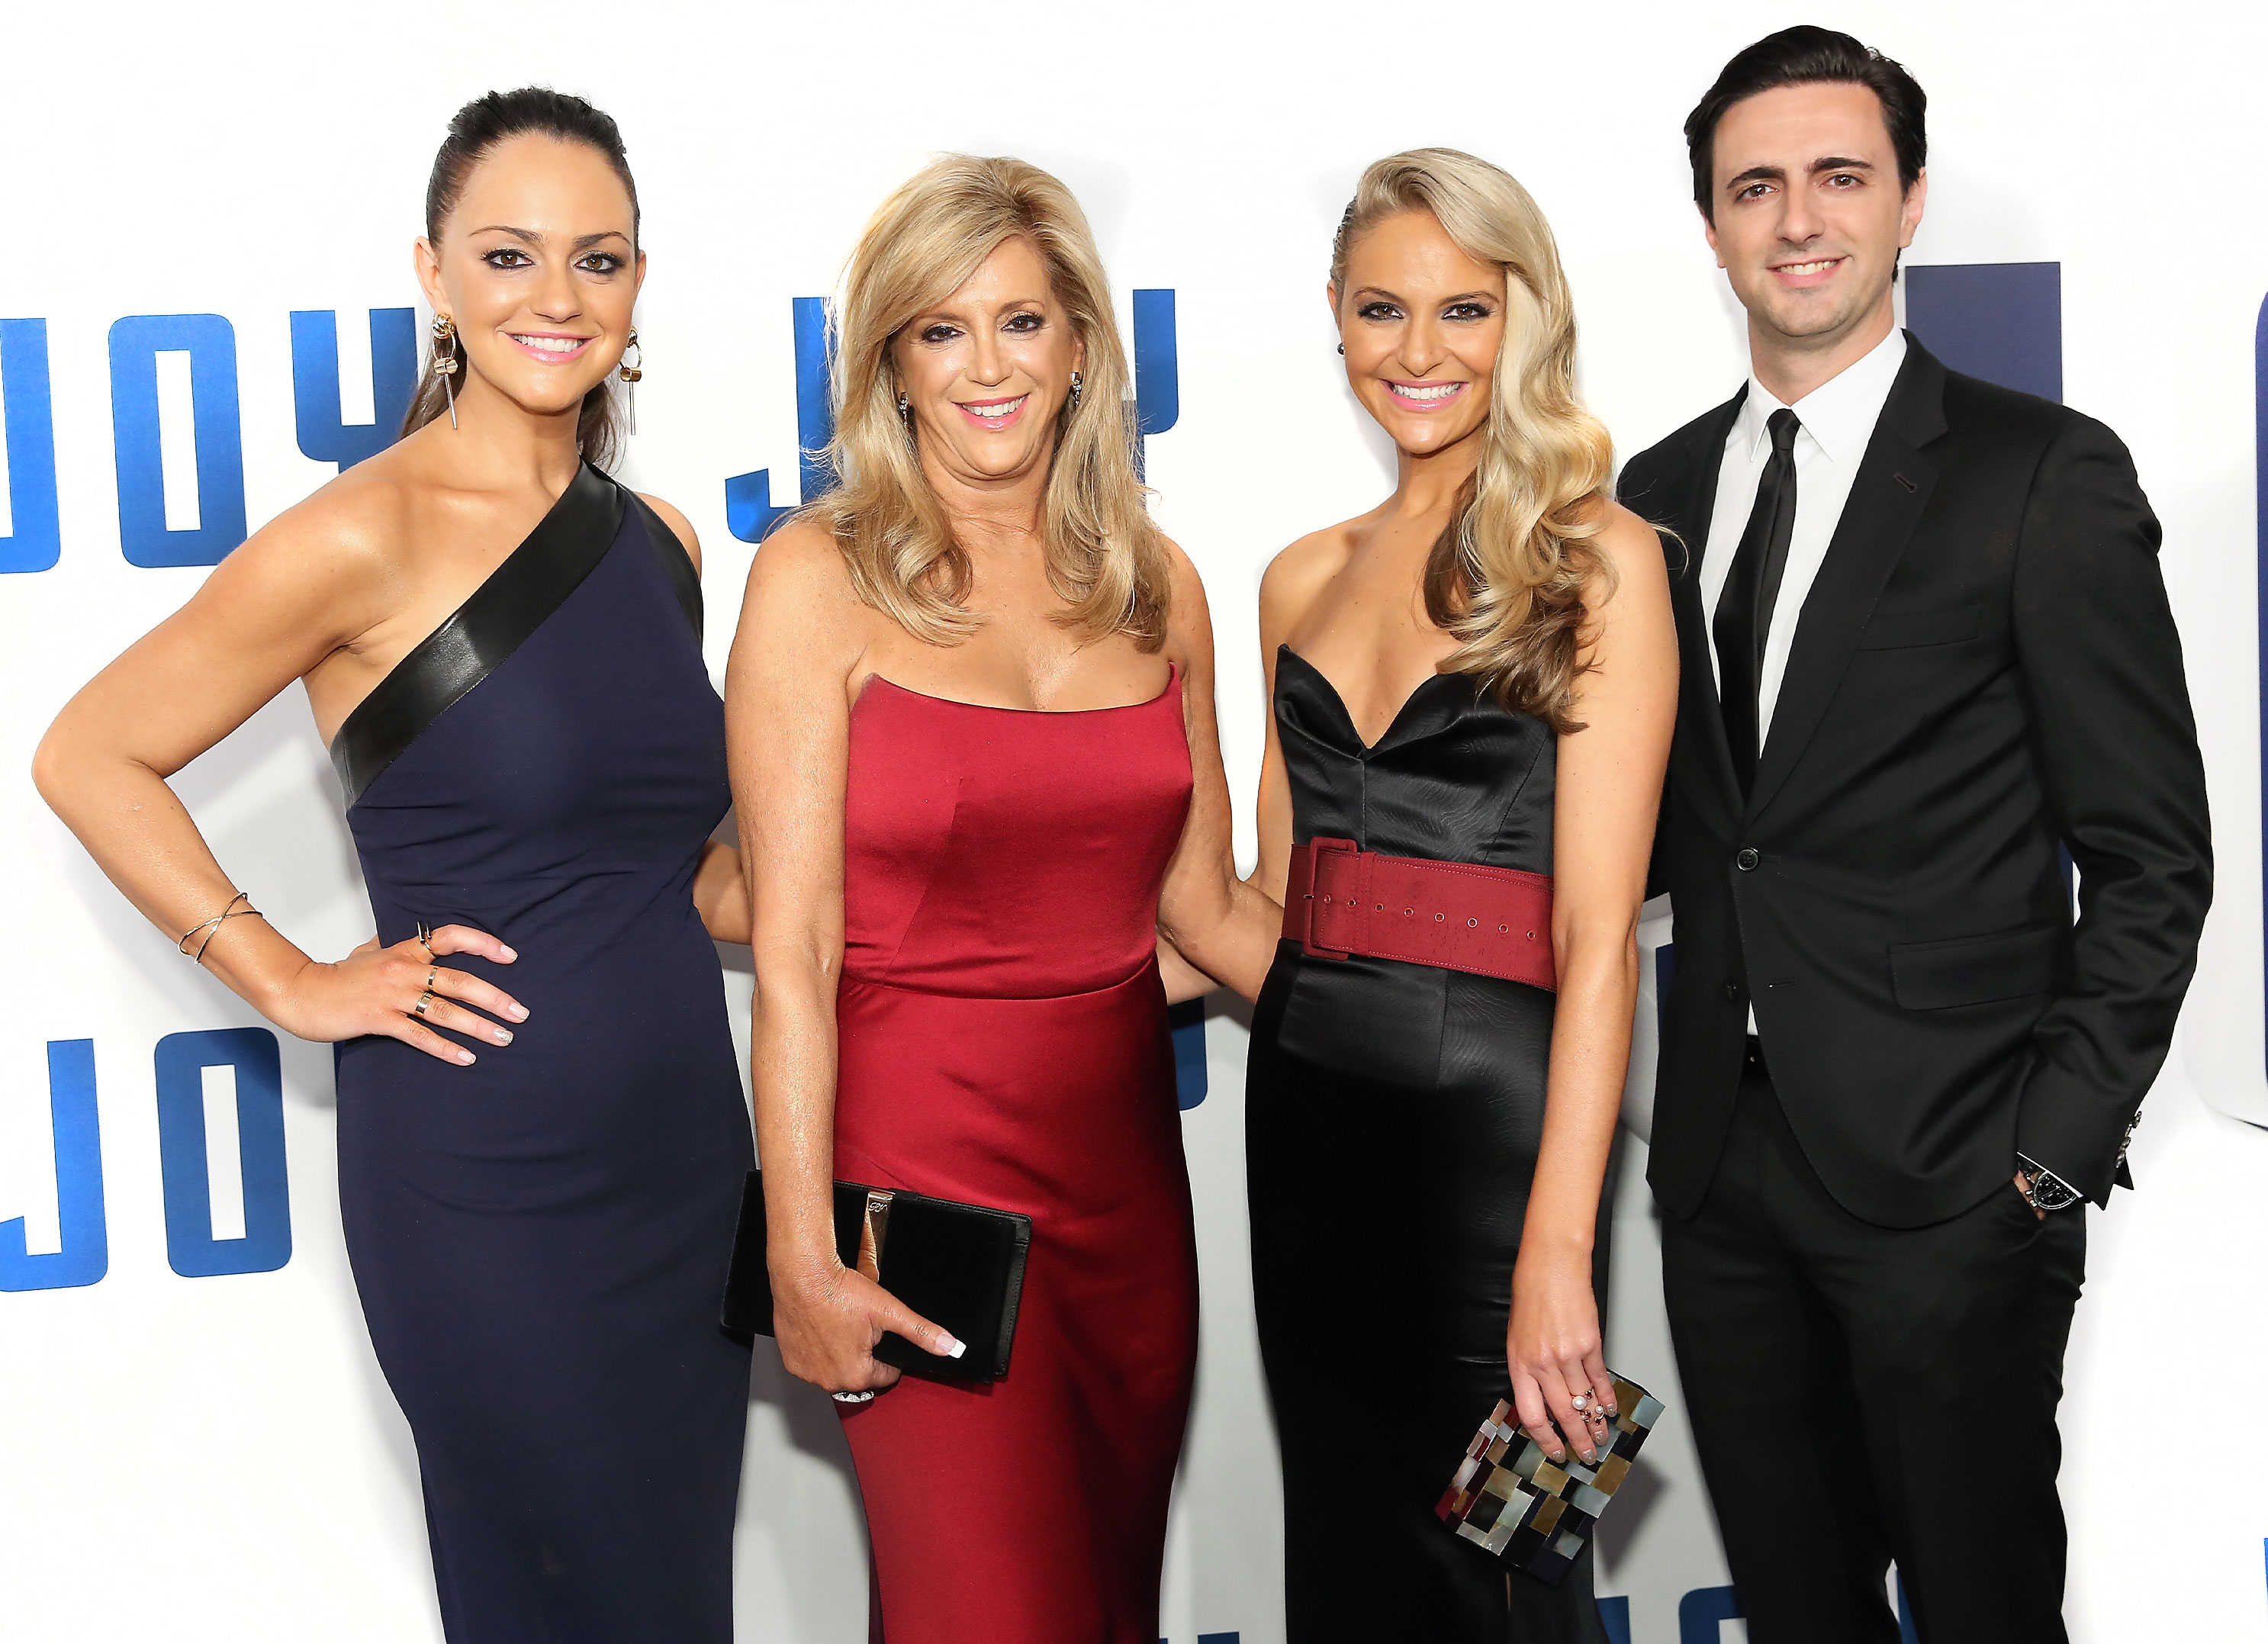 Christie Miranne, Joy Mangano, Jacqueline Miranne and Robert Miranne